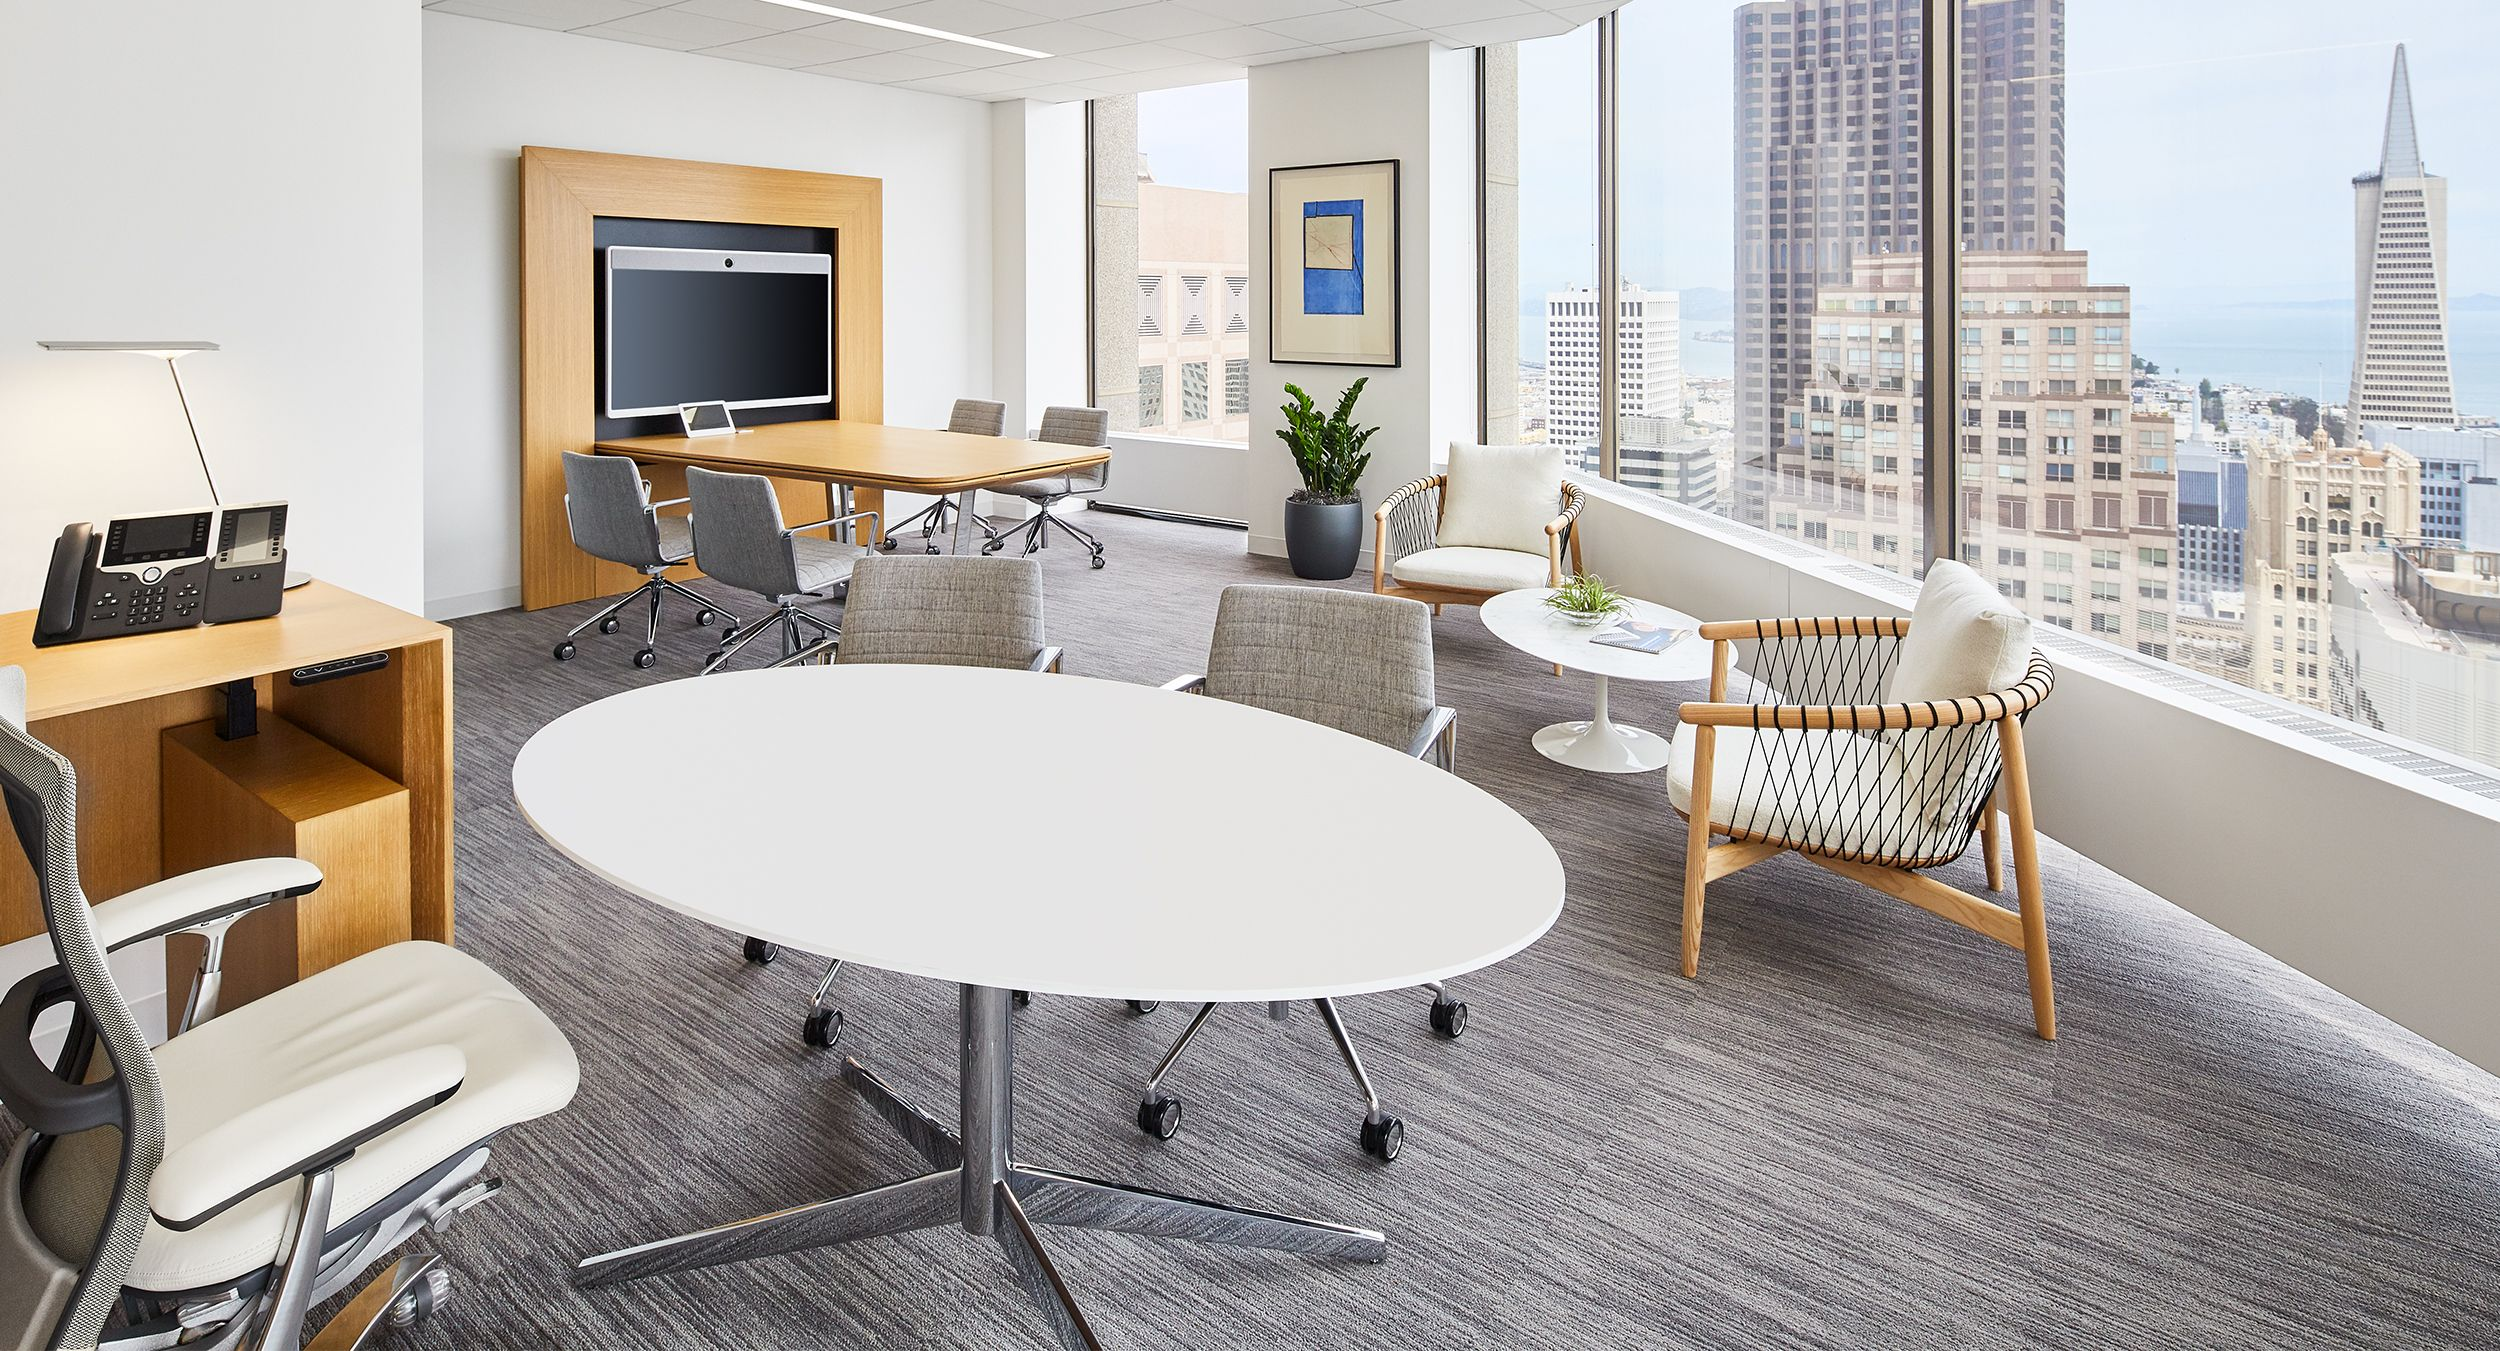 This SESSIONS elliptical table features a Modern White Corian® surface and a MESA media wall is finished in Rift White Oak and Polished Chrome.